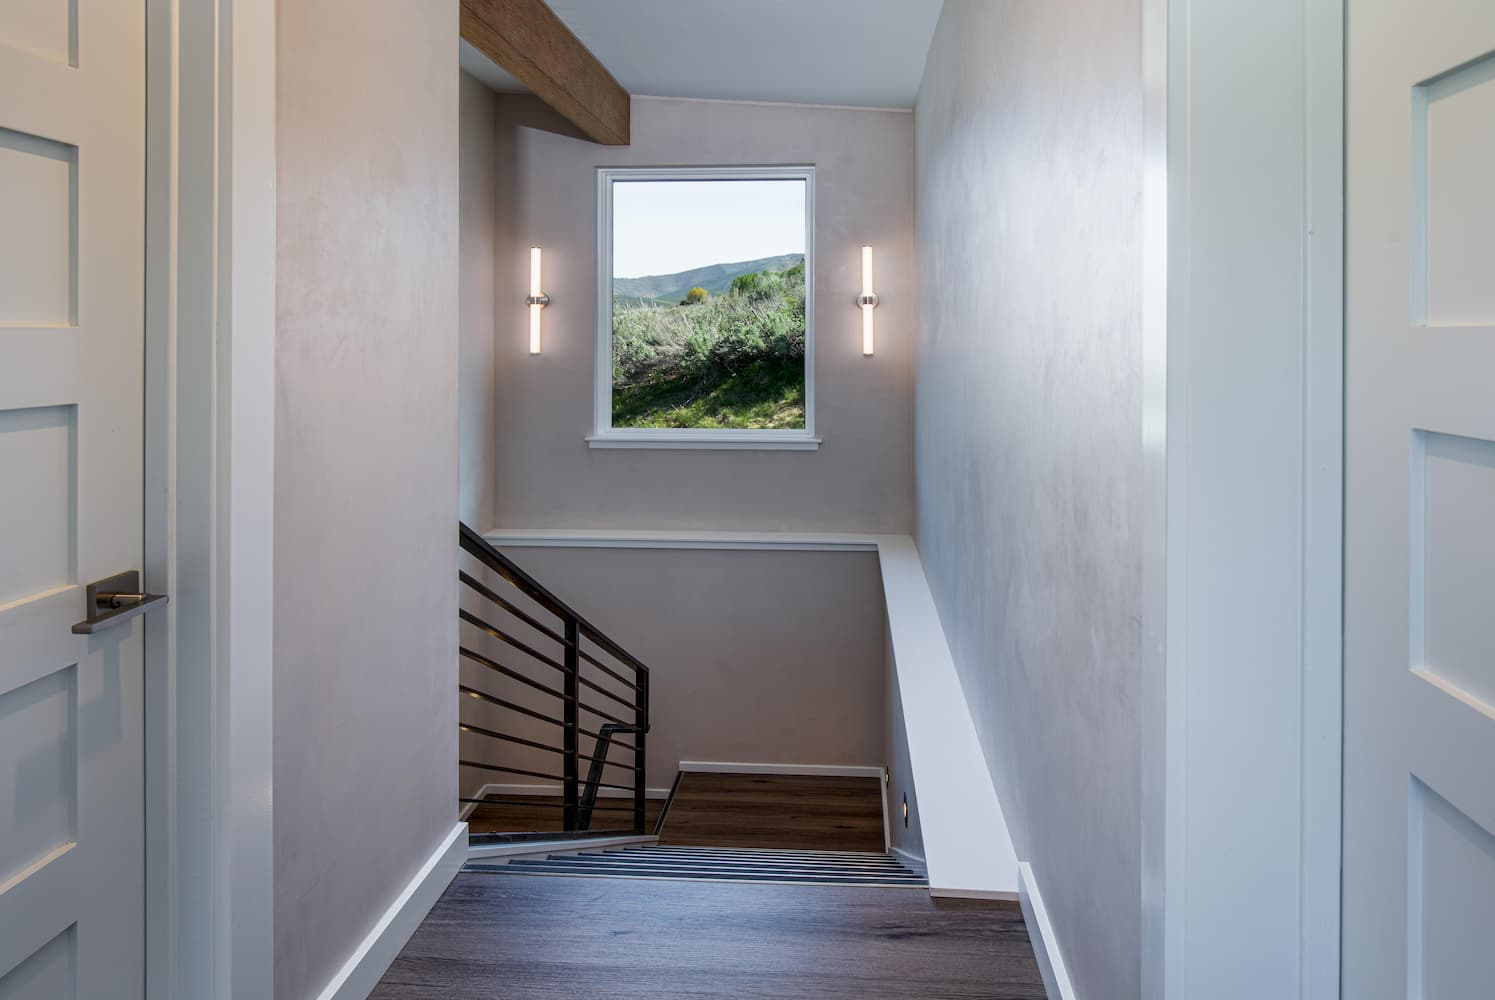 Hallway inside Hailey home with Pella window above the stairwell